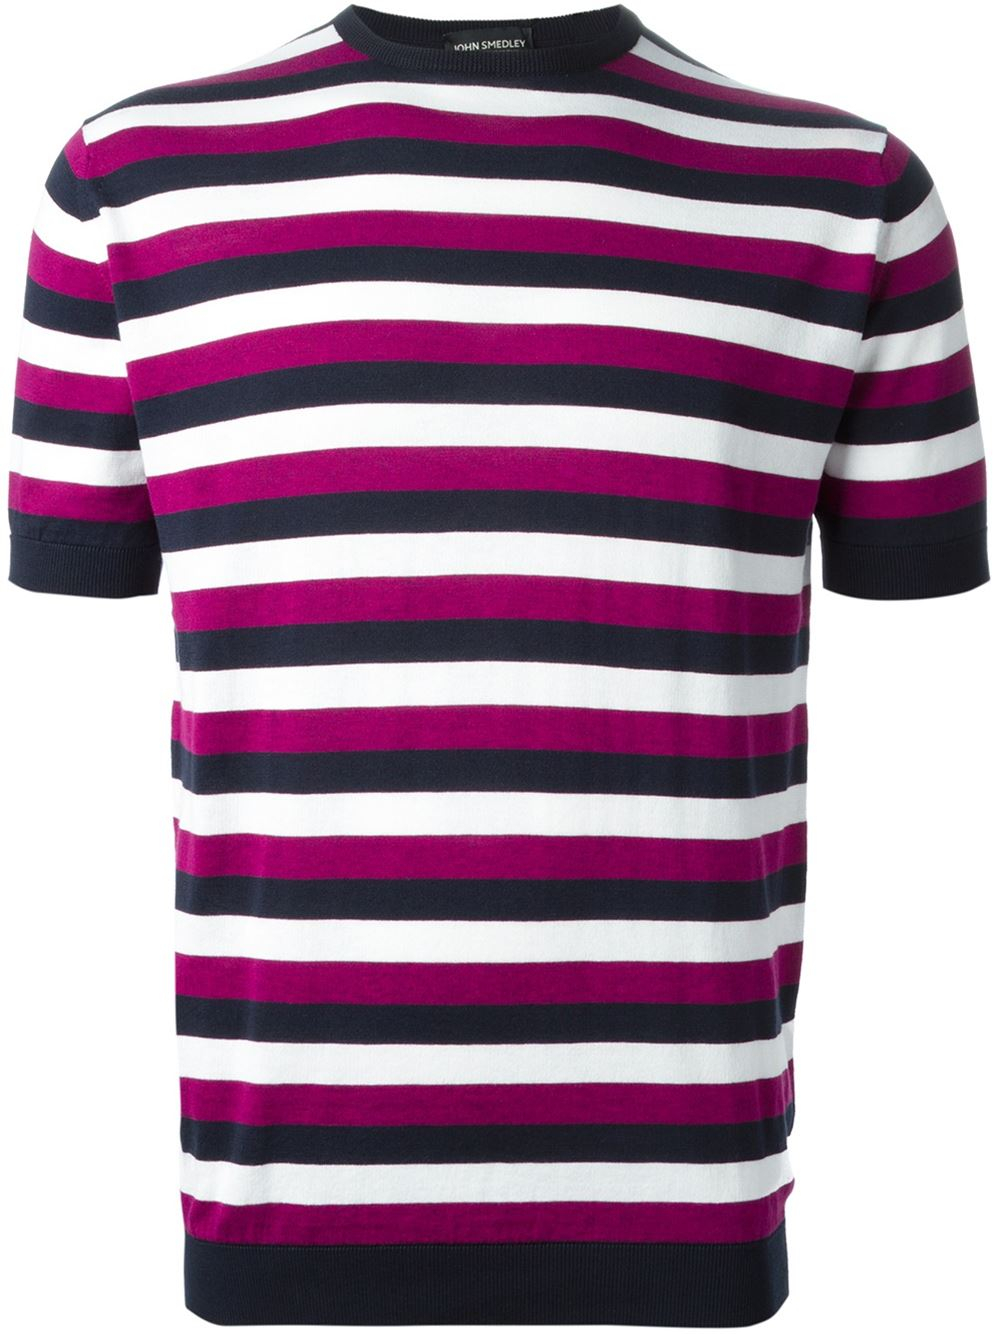 John smedley 39 jetty 39 striped t shirt in pink for men pink for Purple and black striped t shirt